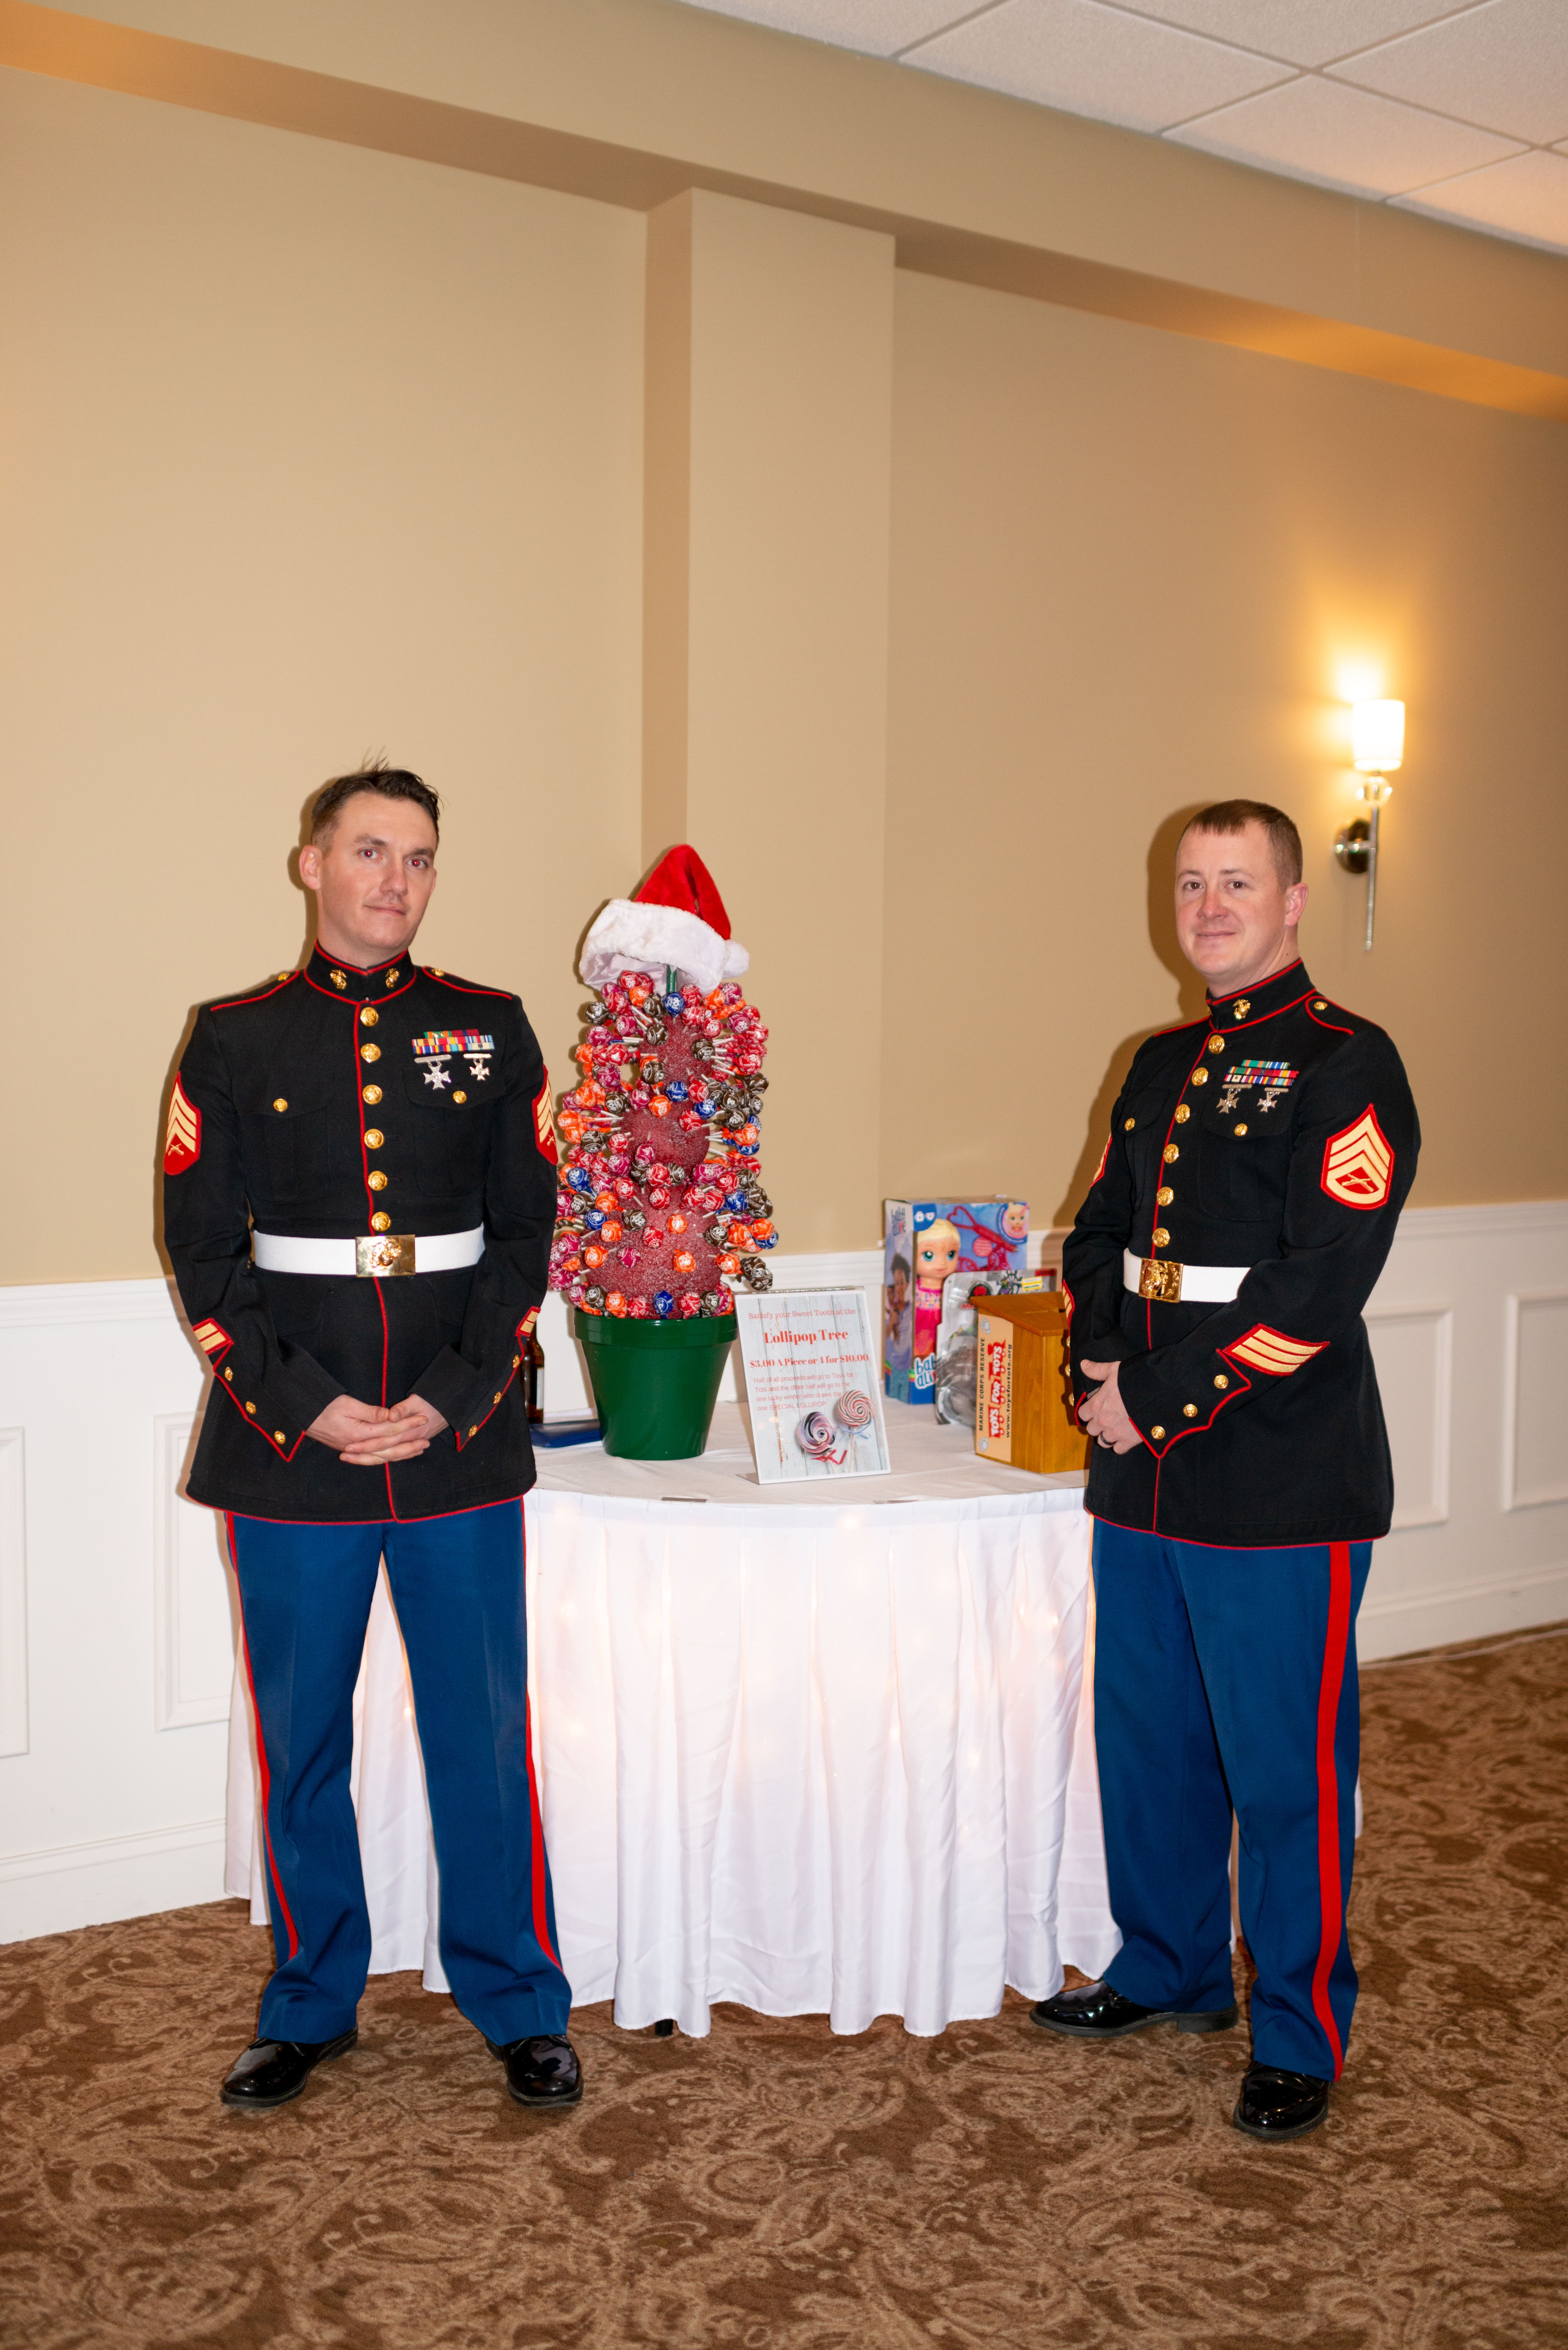 2019-12-December/EventPhotos/7th-Annual-Toys-for-Tots-Holiday-Party/-6 (Image - 6)